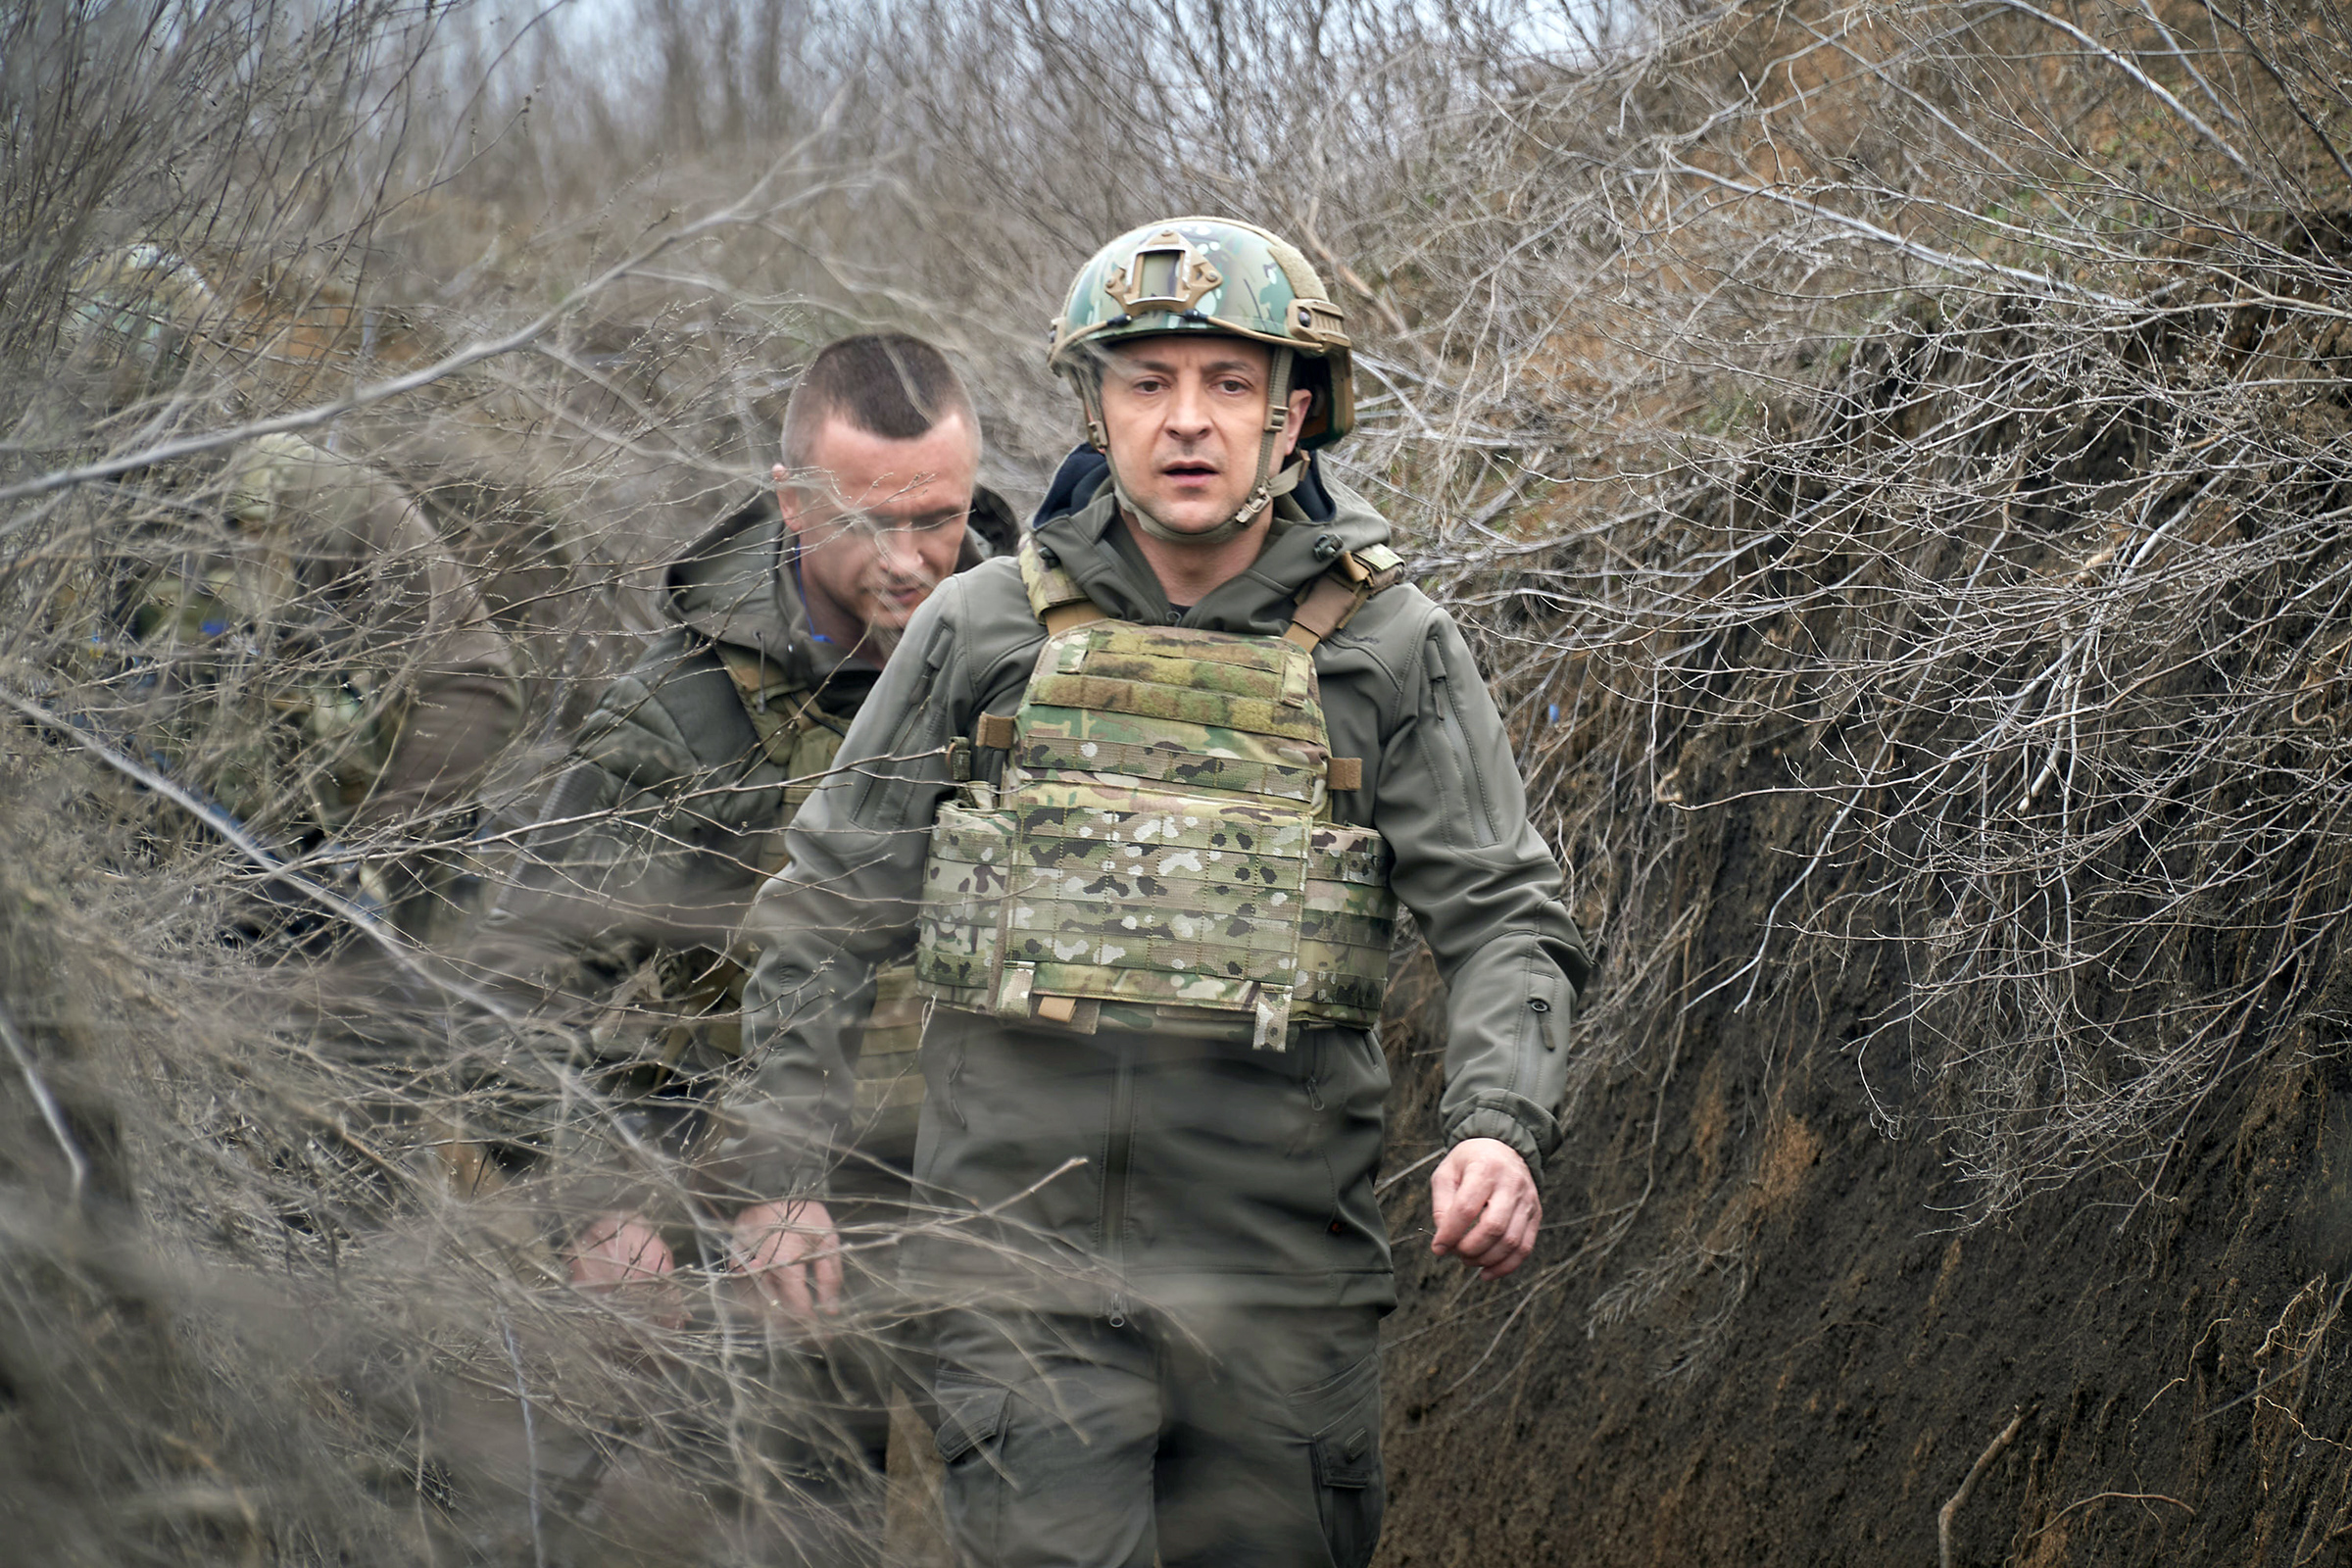 Ukraine's President Volodymyr Zelensky visits positions of armed forces near the frontline with Russian-backed separatists in Donbass region, Ukraine, on April 9, 2021.